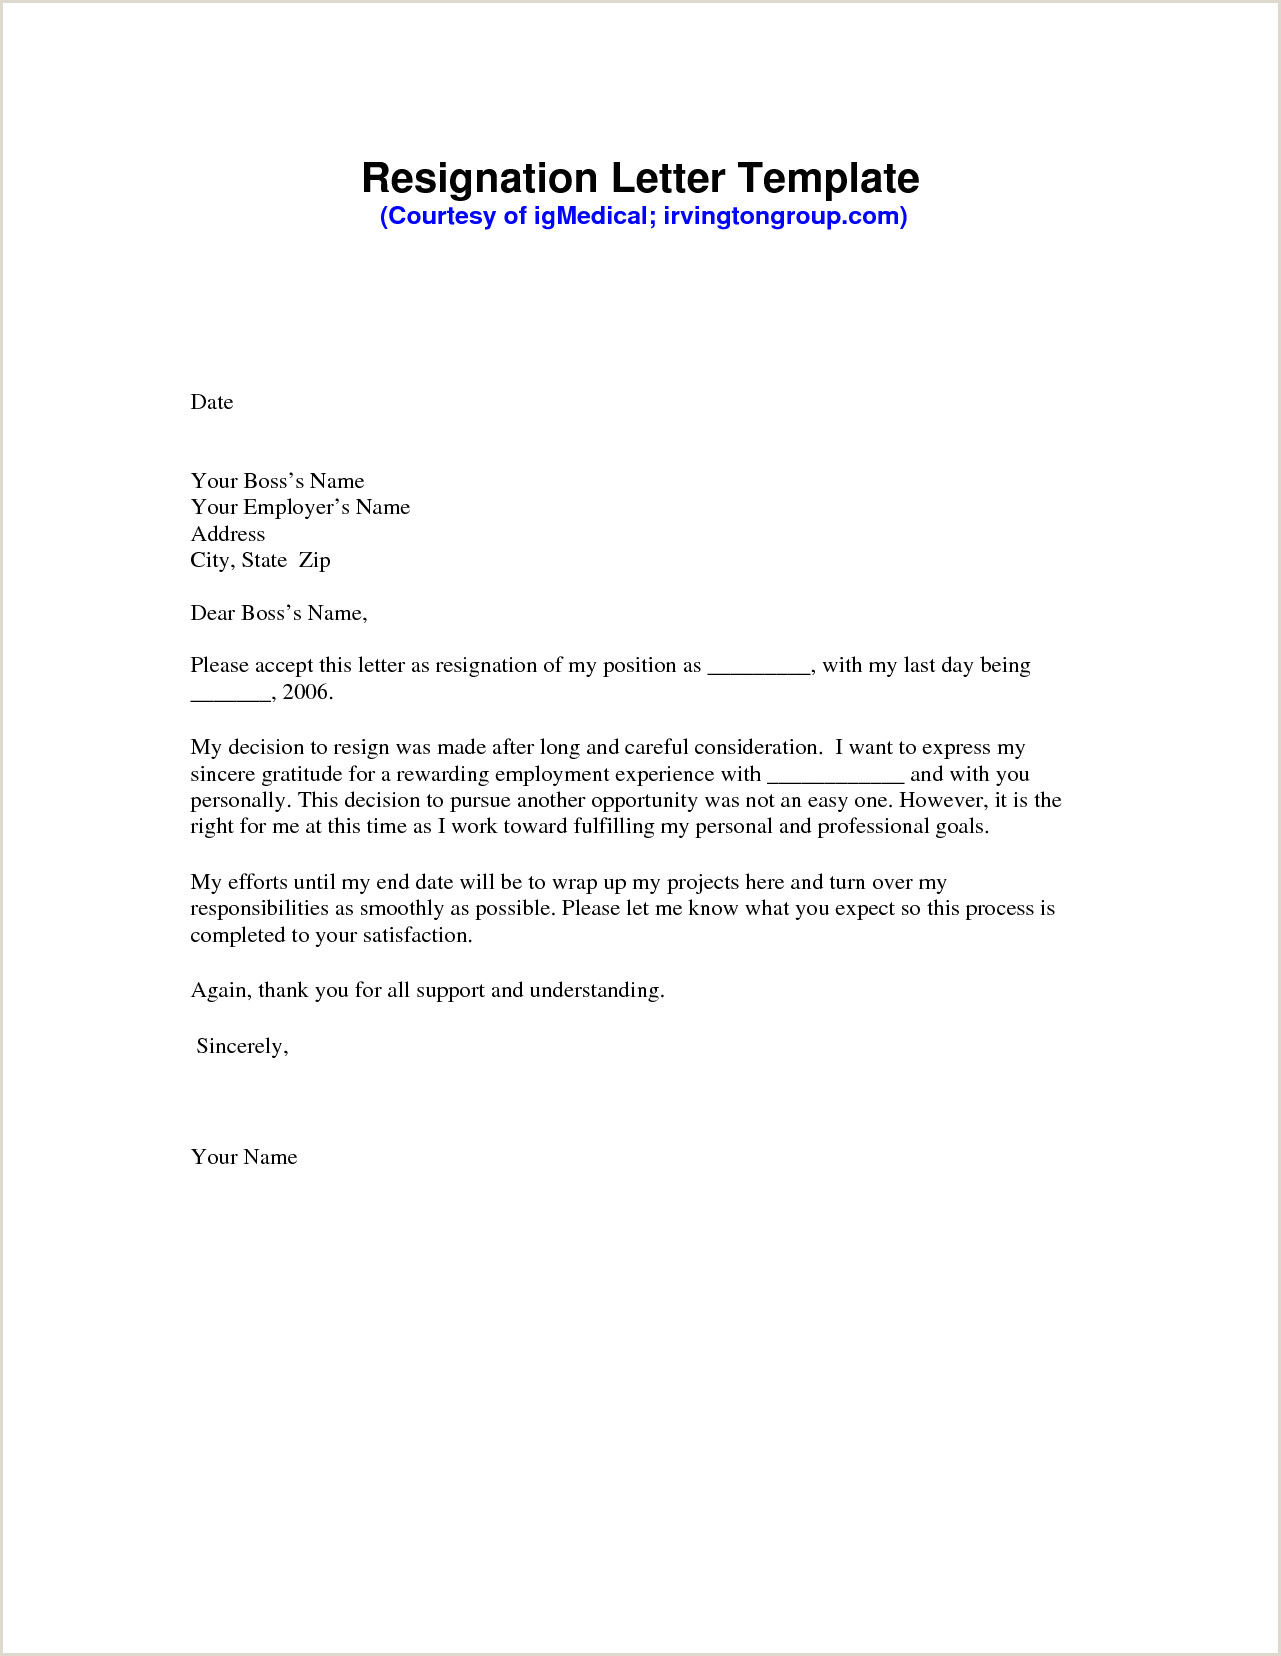 Sample Retirement Letter to Boss Resignation Letter Sample Pdf Mechanical Engineering Resume